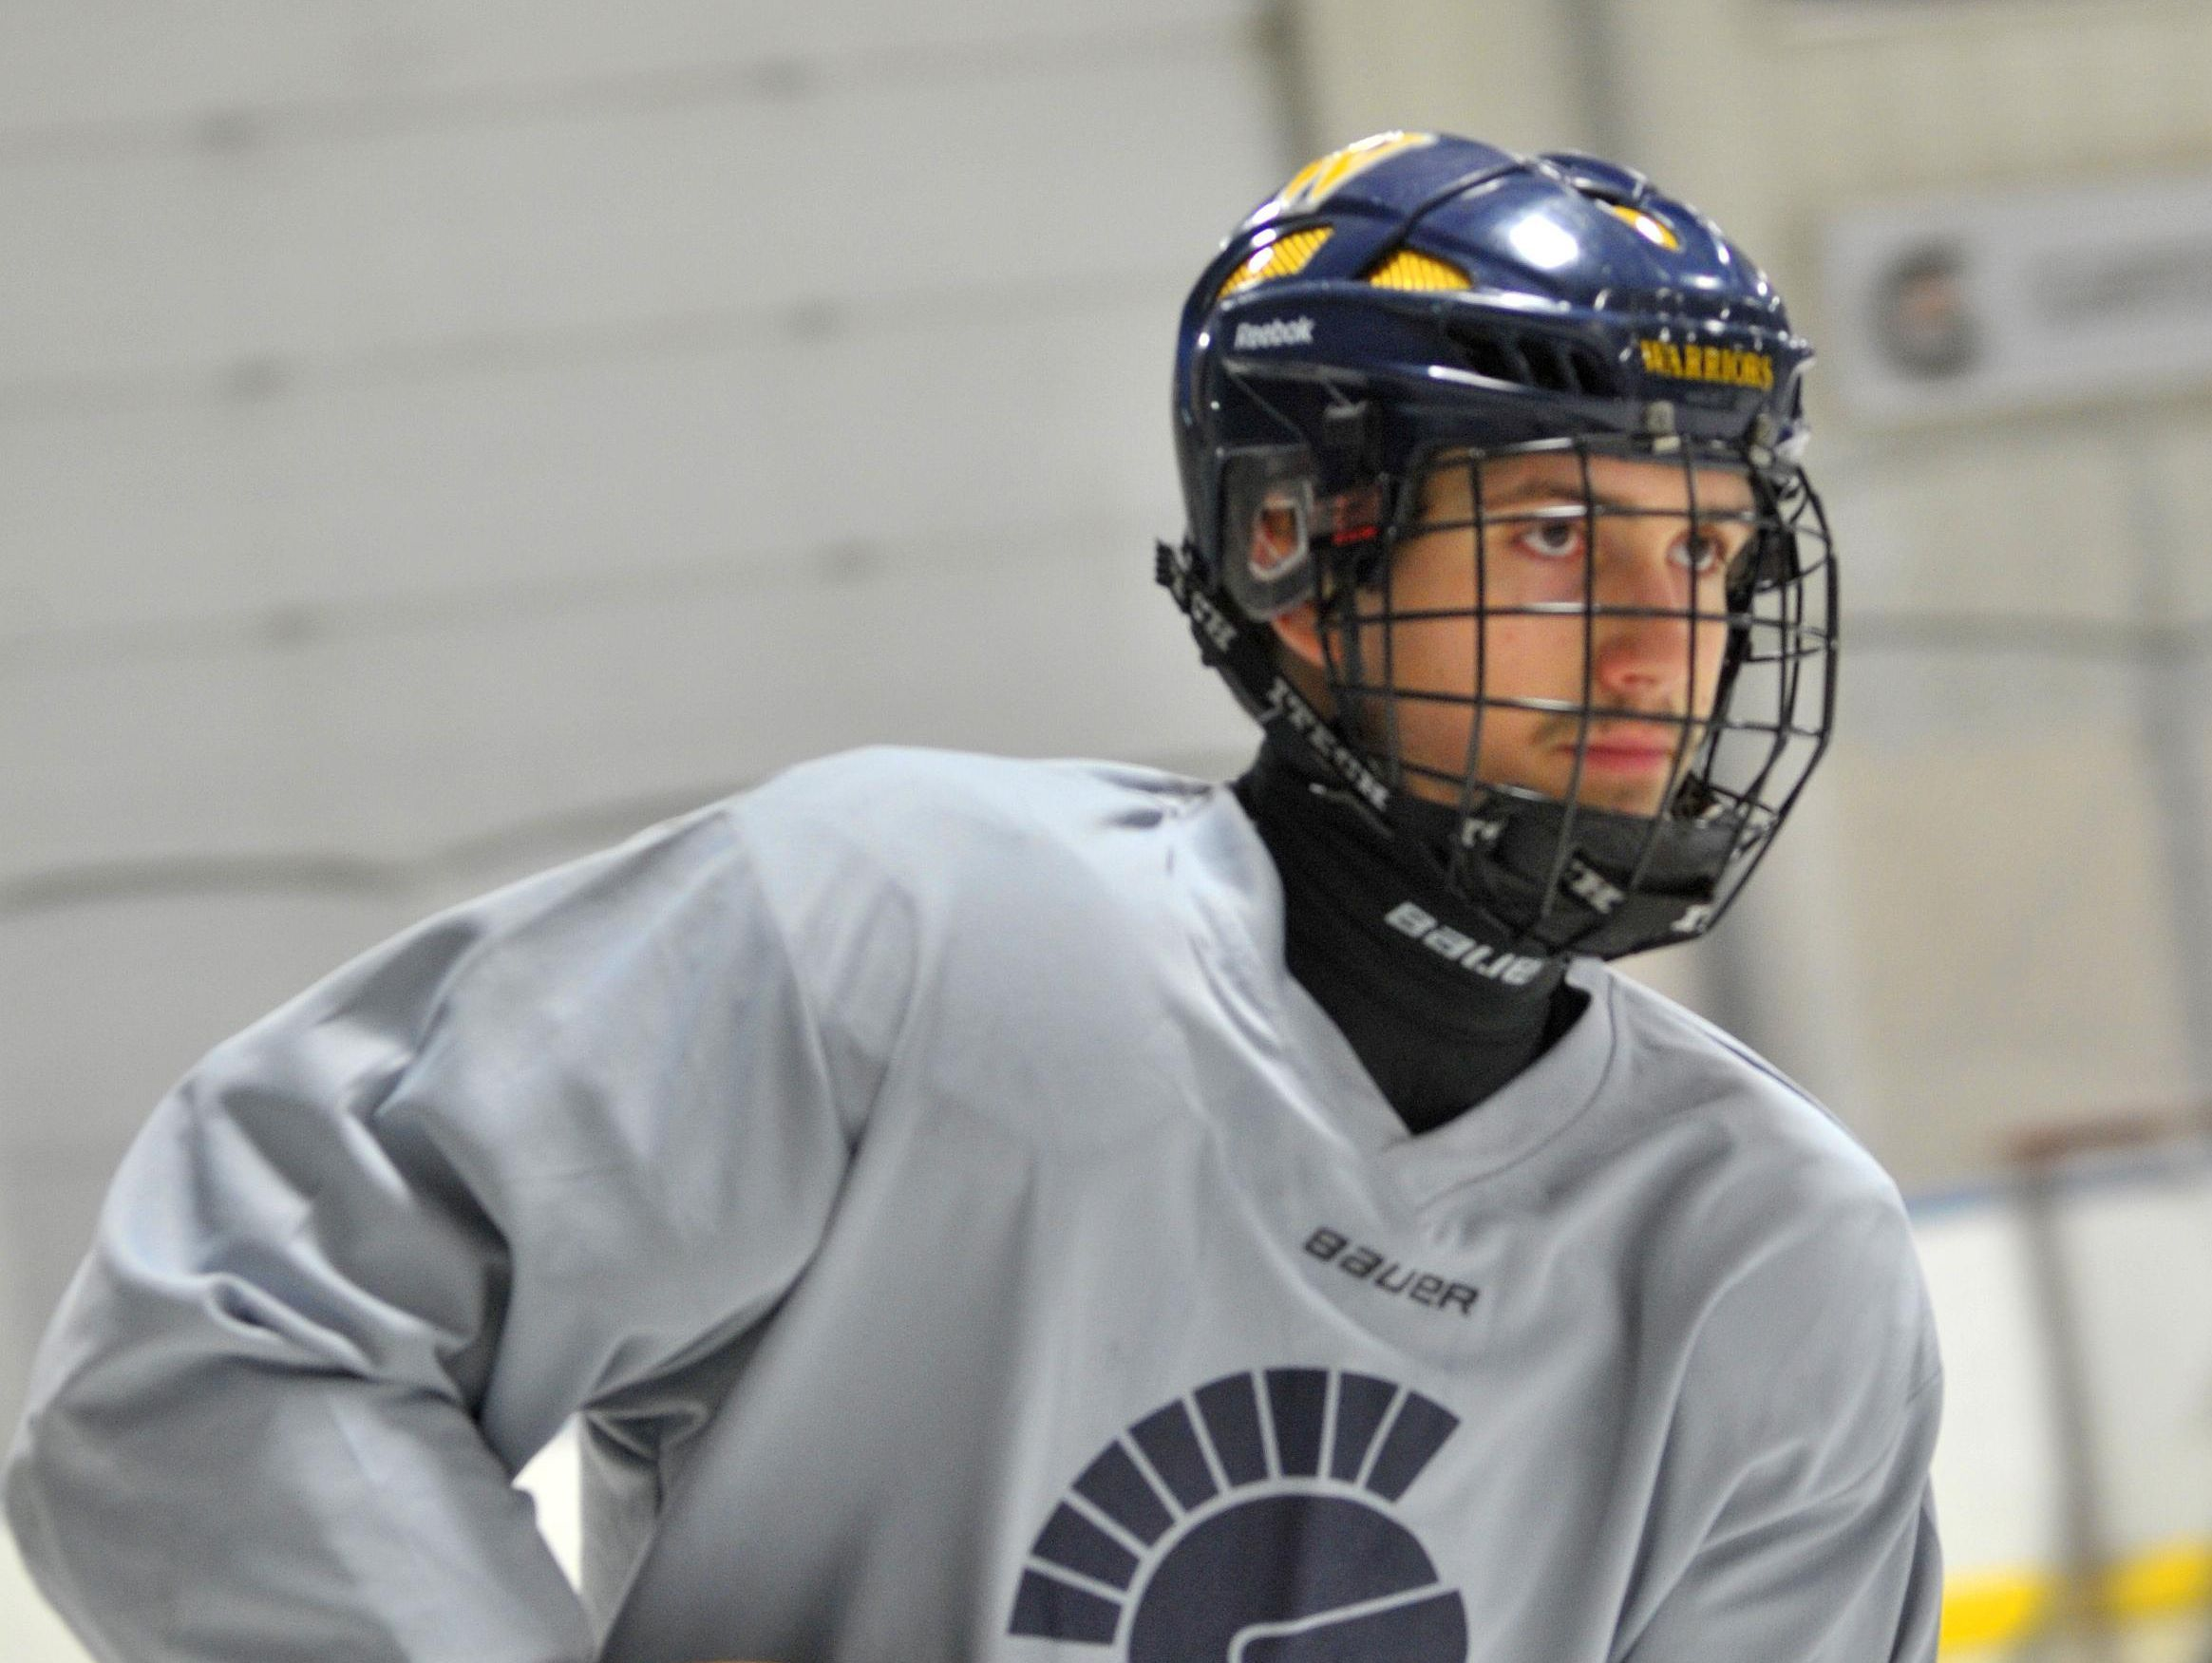 Adam Parsells, who graduated from Wausau West earlier this month, is expected to hear his name called sometime Saturday during the NHL Draft.